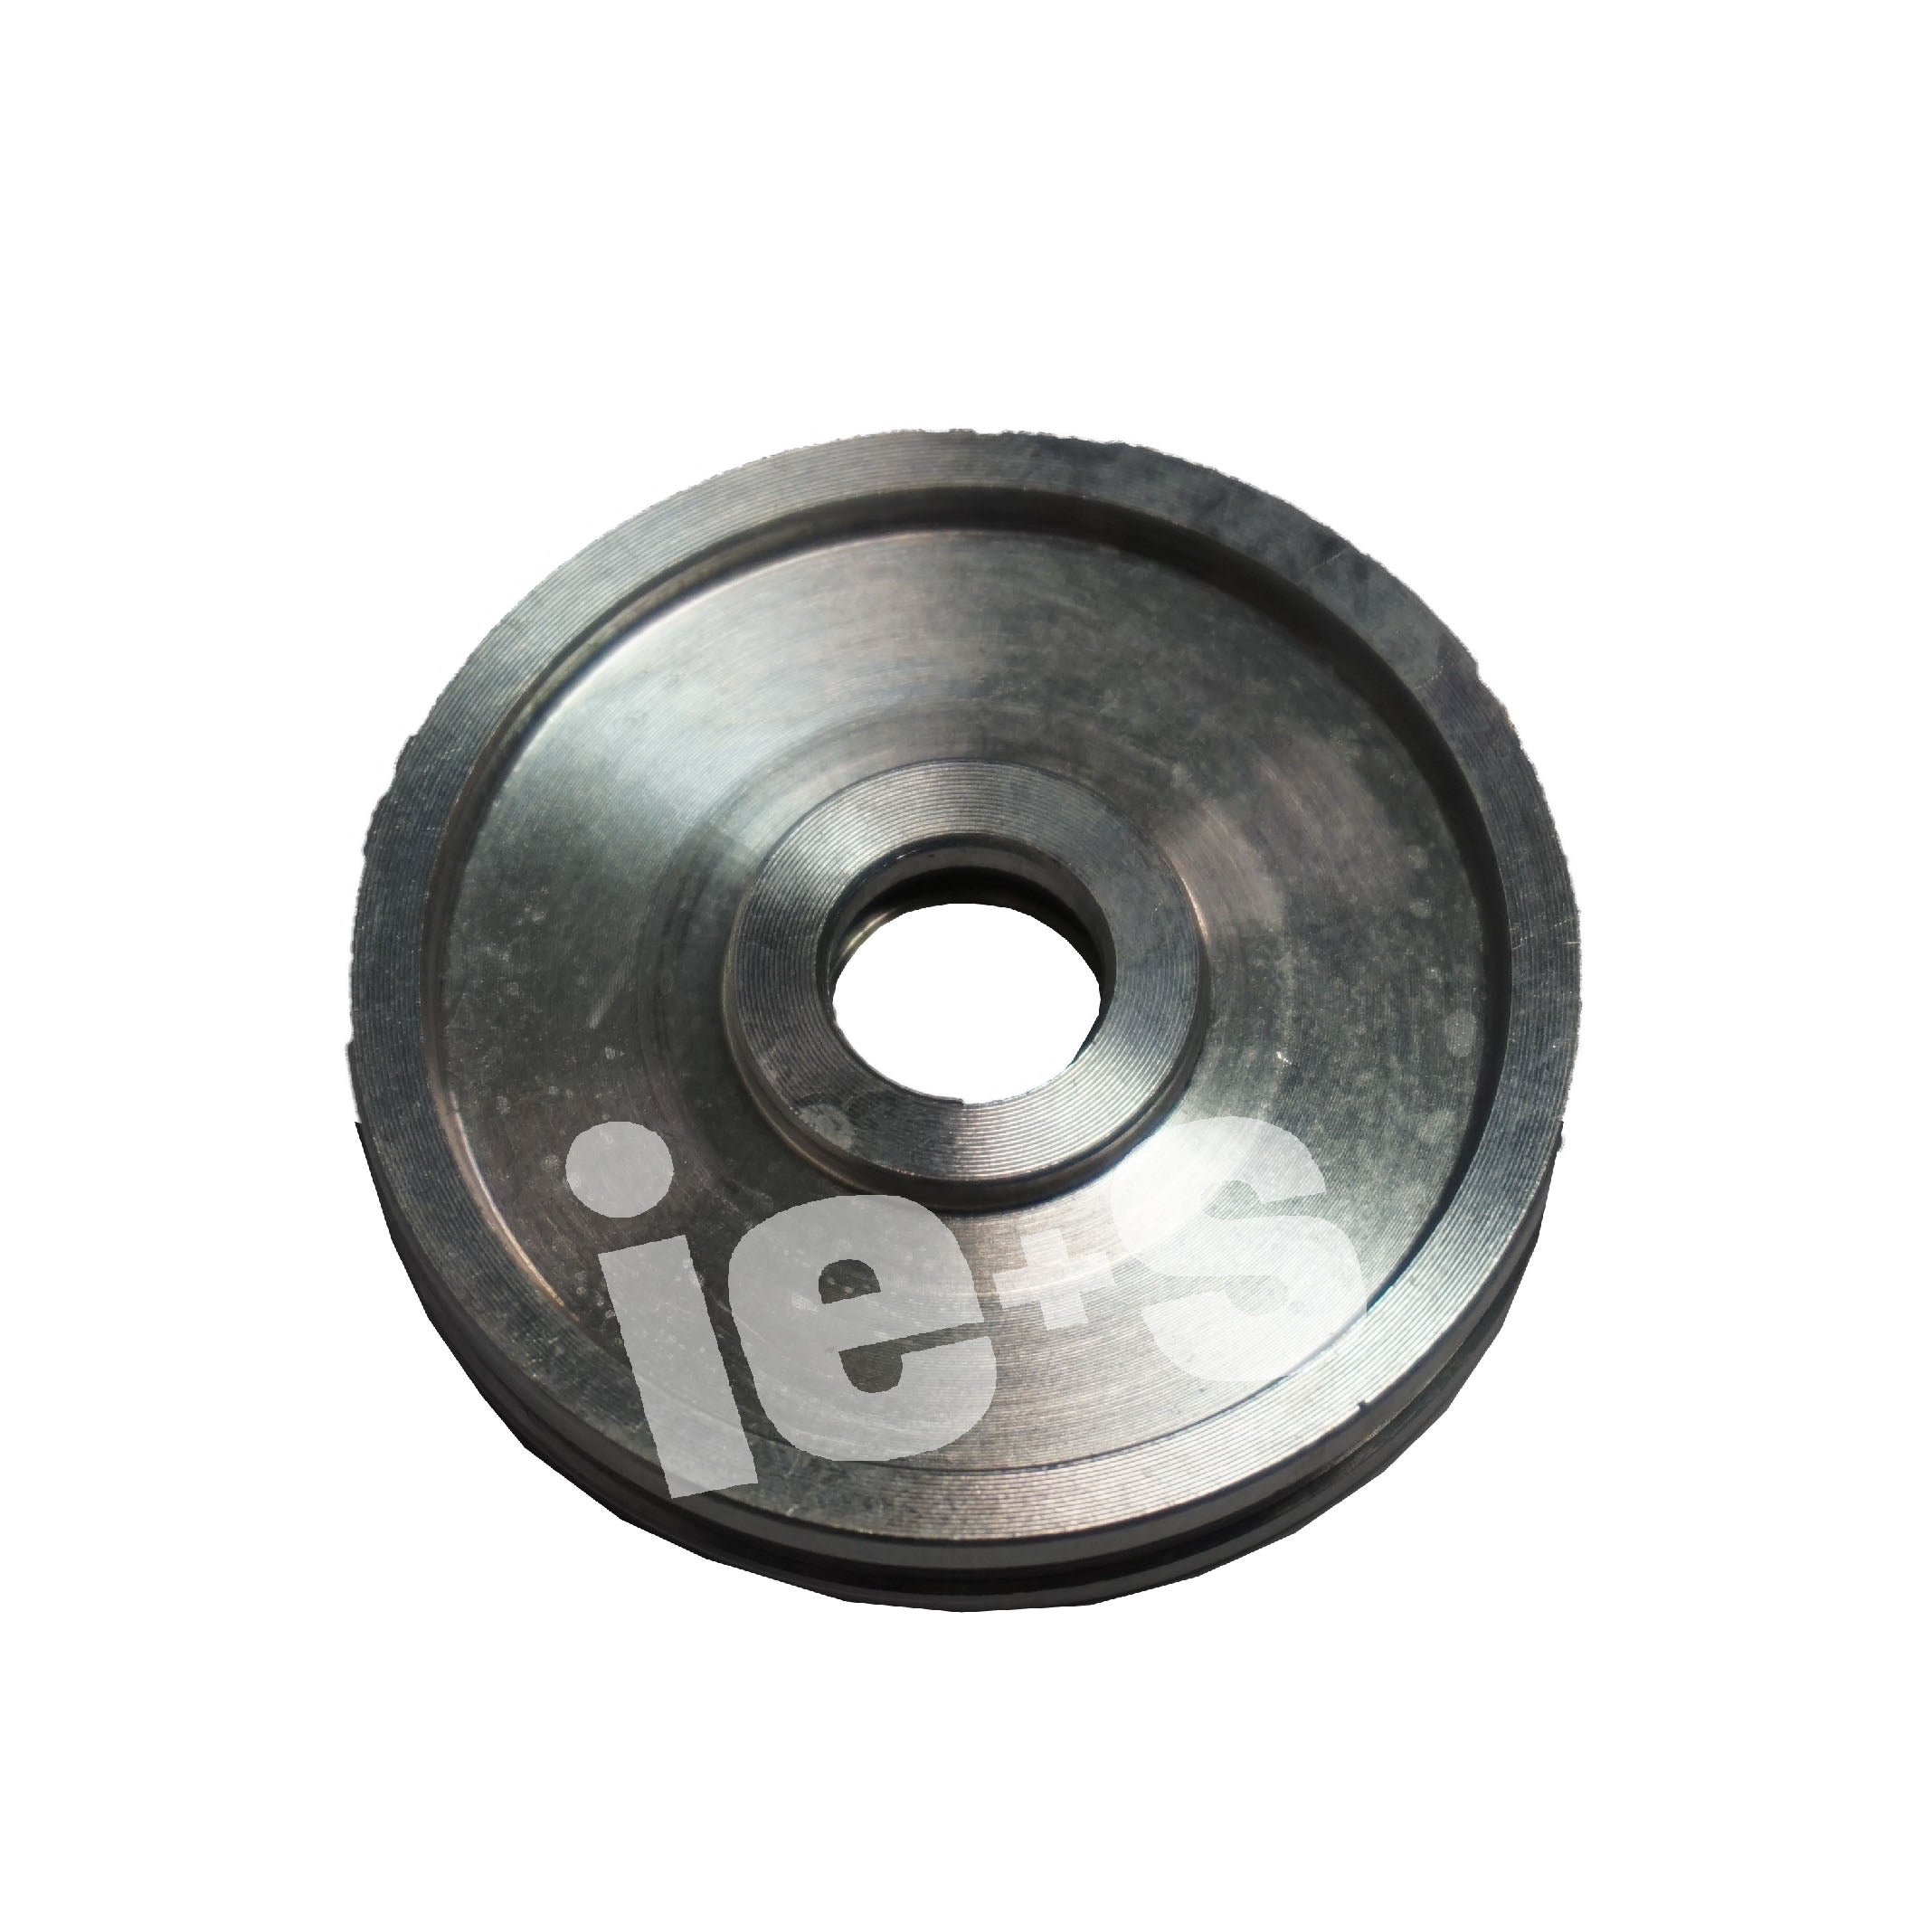 PK3-11 Piston Diaphragm, each